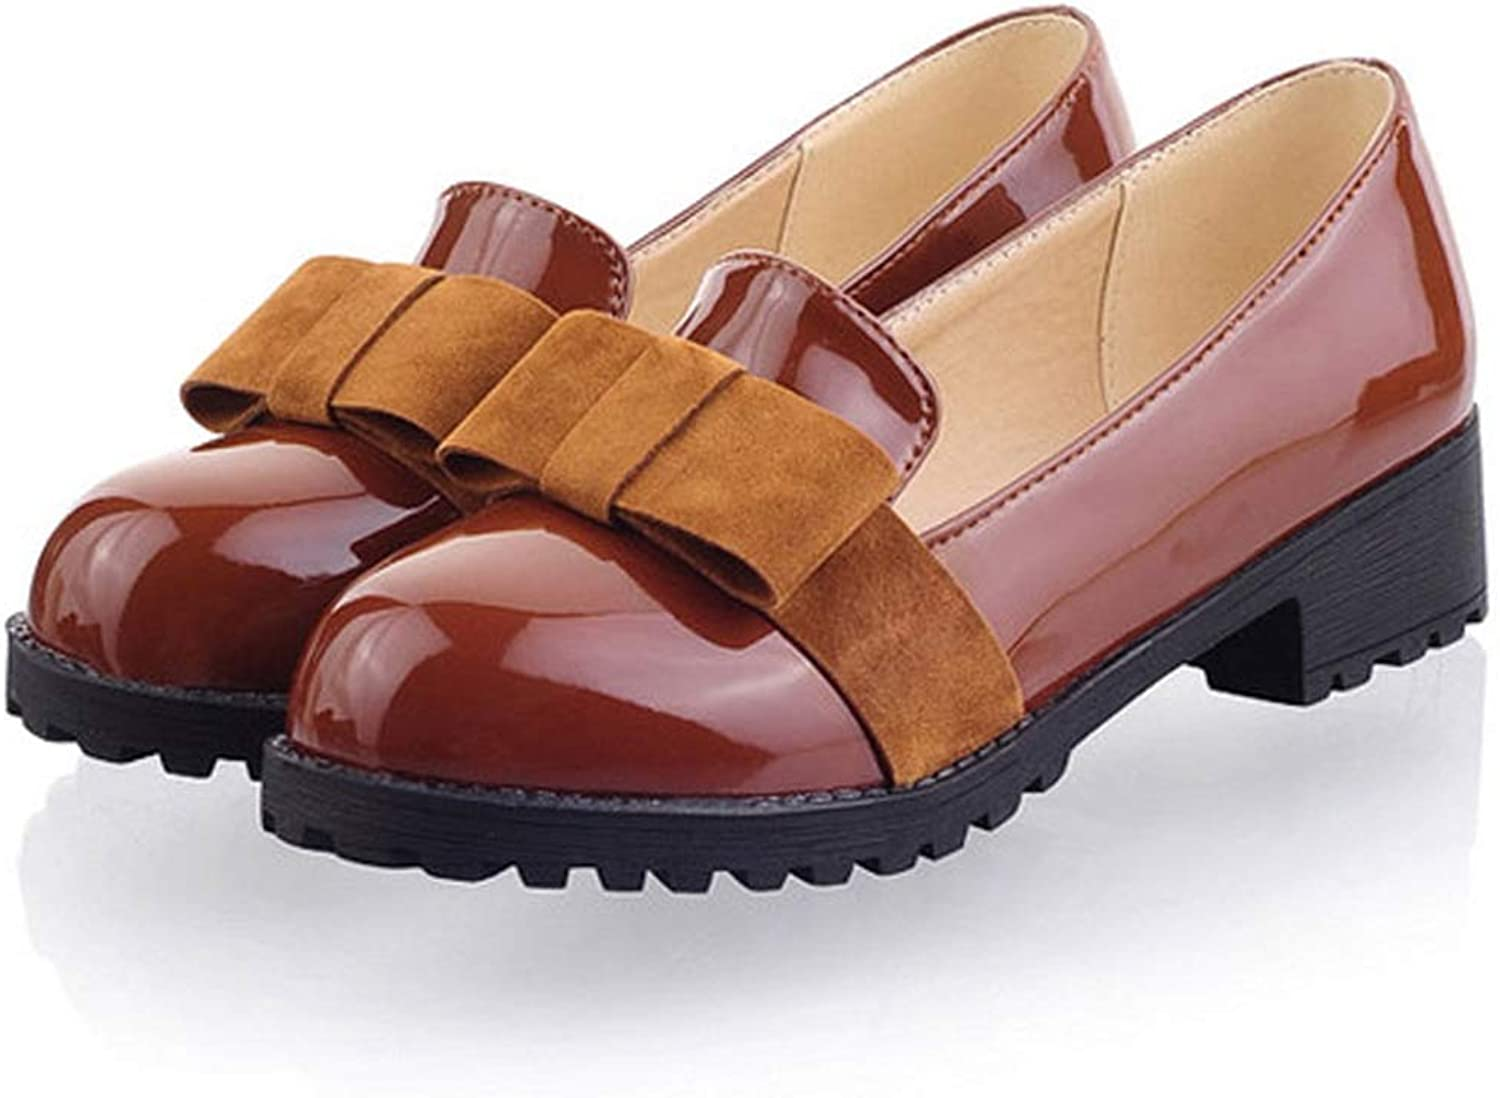 DoraTasia Women's Slip On Patent Leather Bowtie Loafers College Style Girls Casual Mocassin shoes